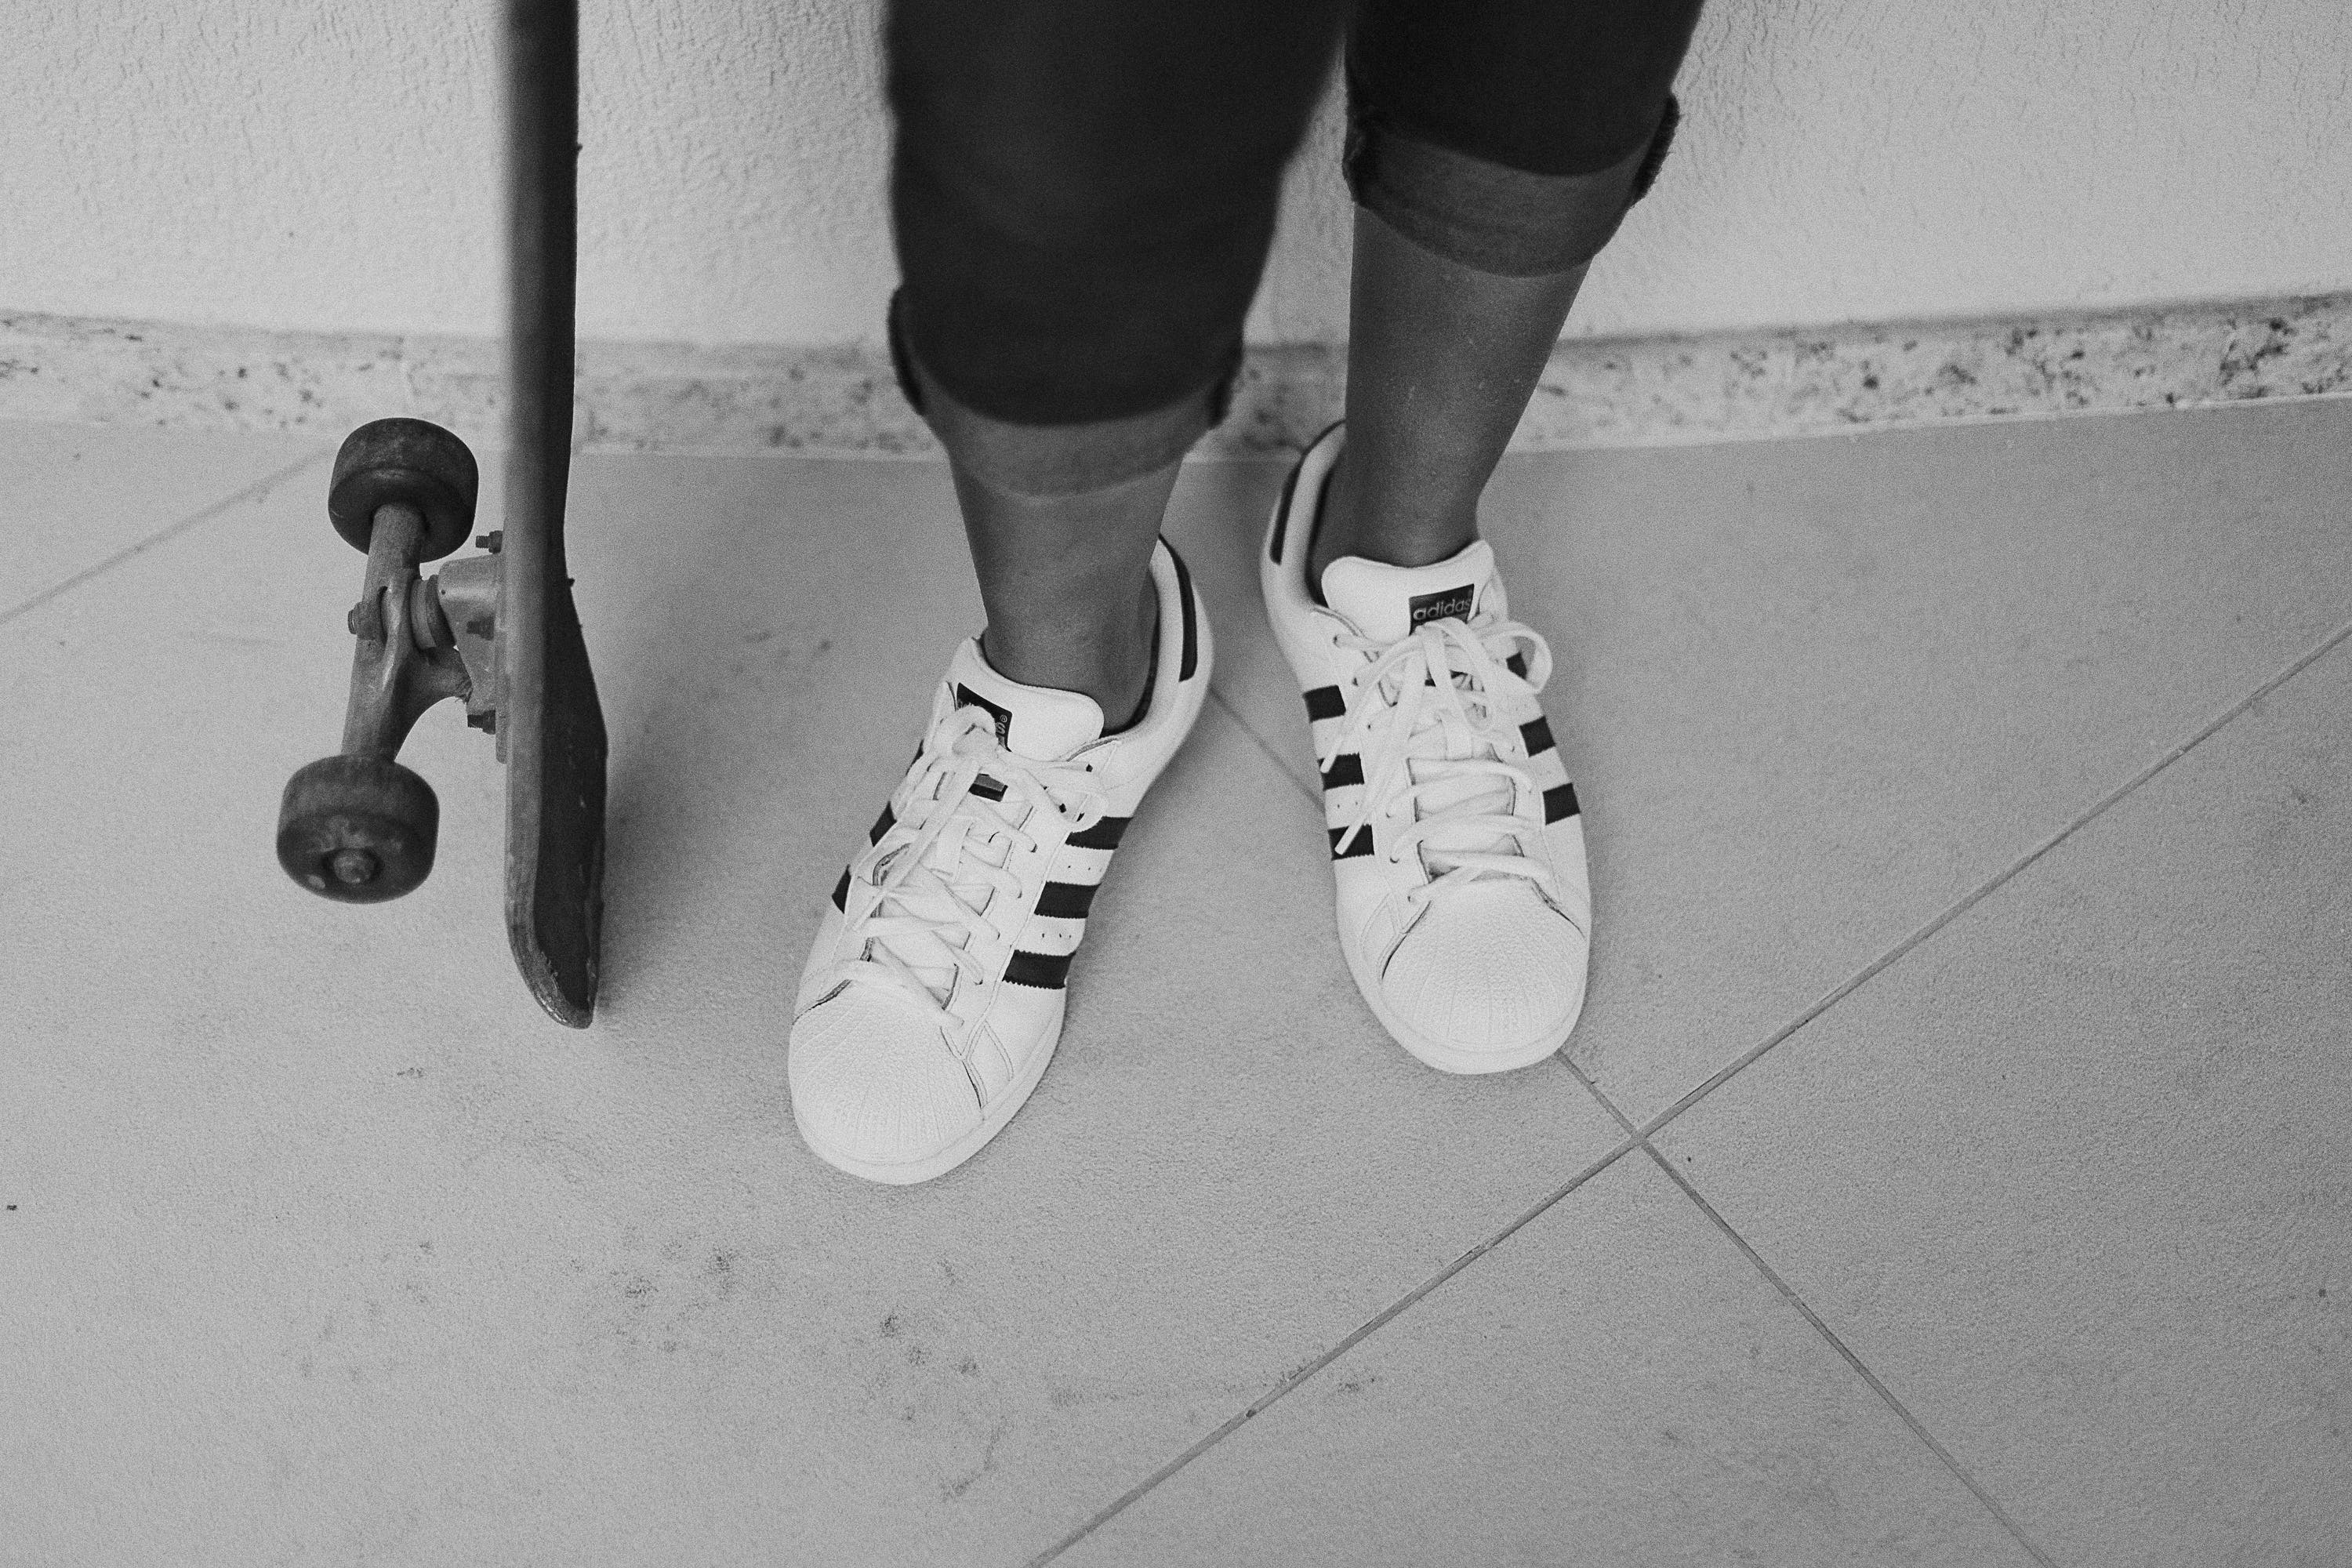 Free stock photo of black-and-white, person, feet, shoes